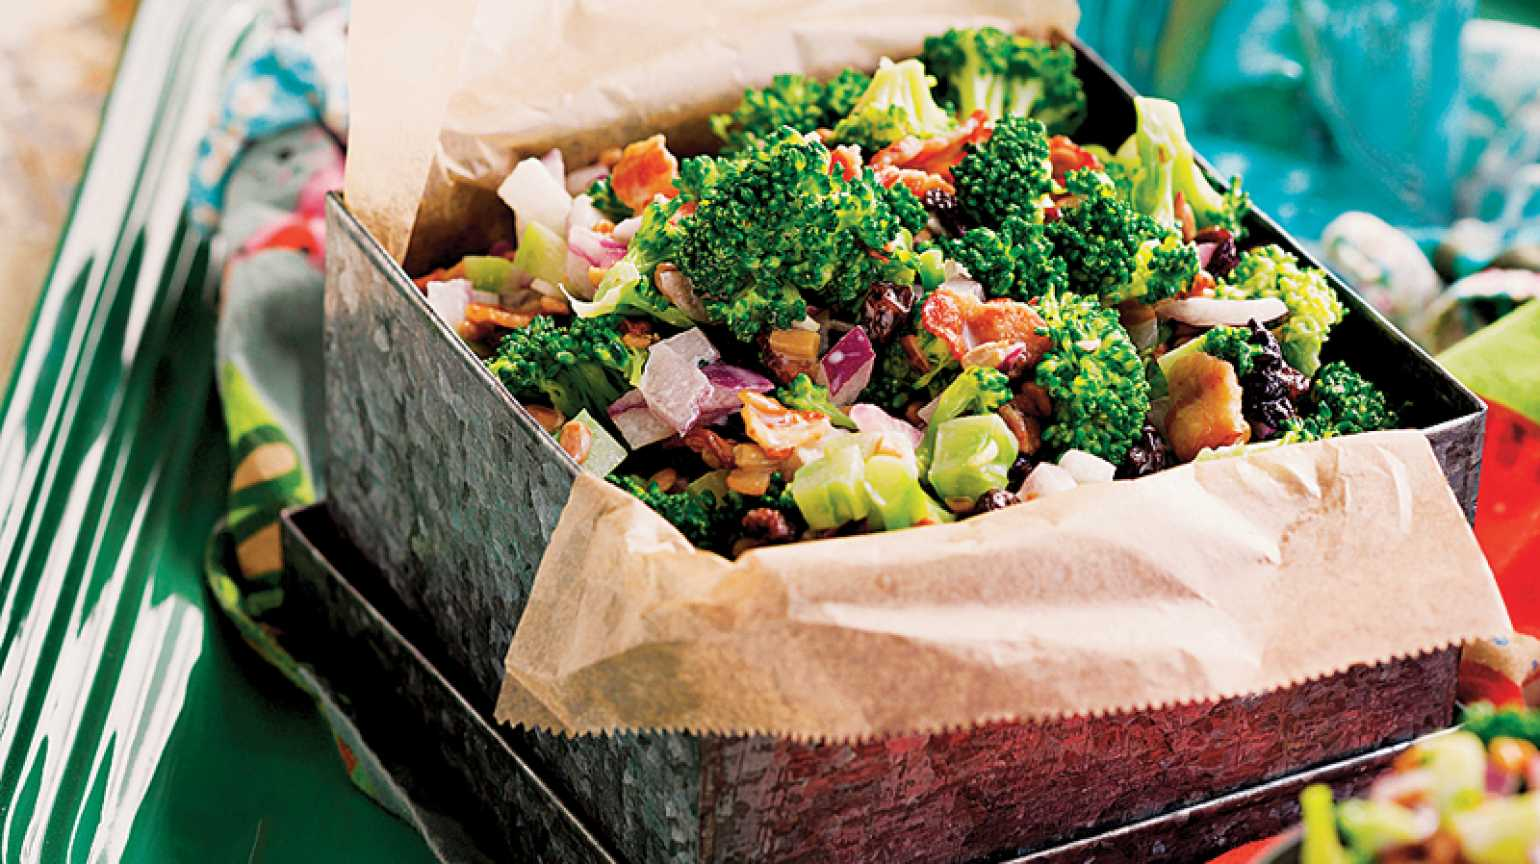 Refrigerator Broccoli Salad